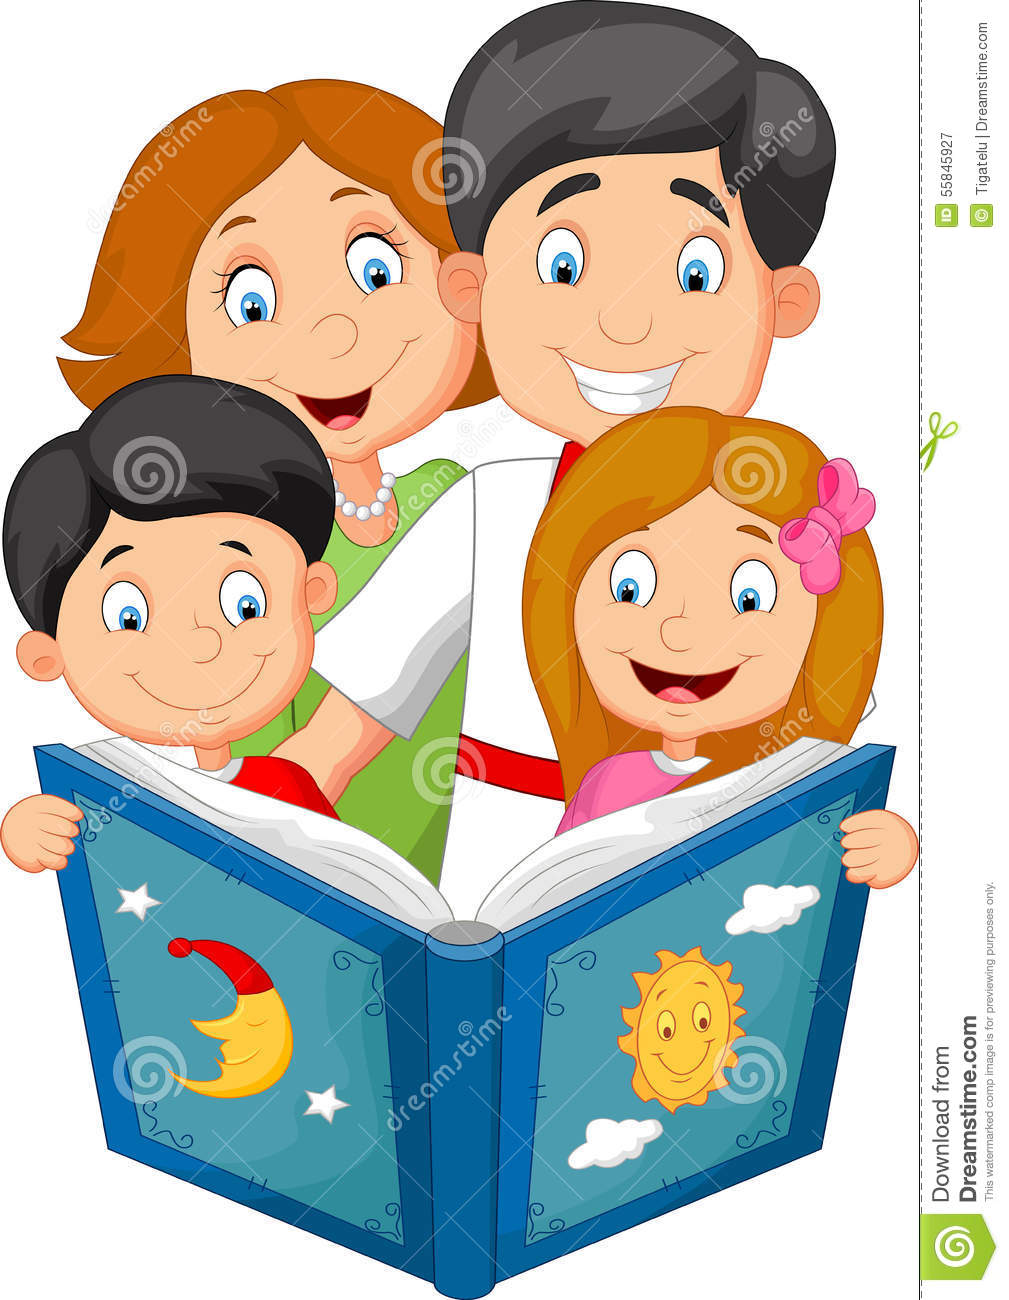 Cartoon Family Read A Bedtime Story Stock Vector - Image: 55845927